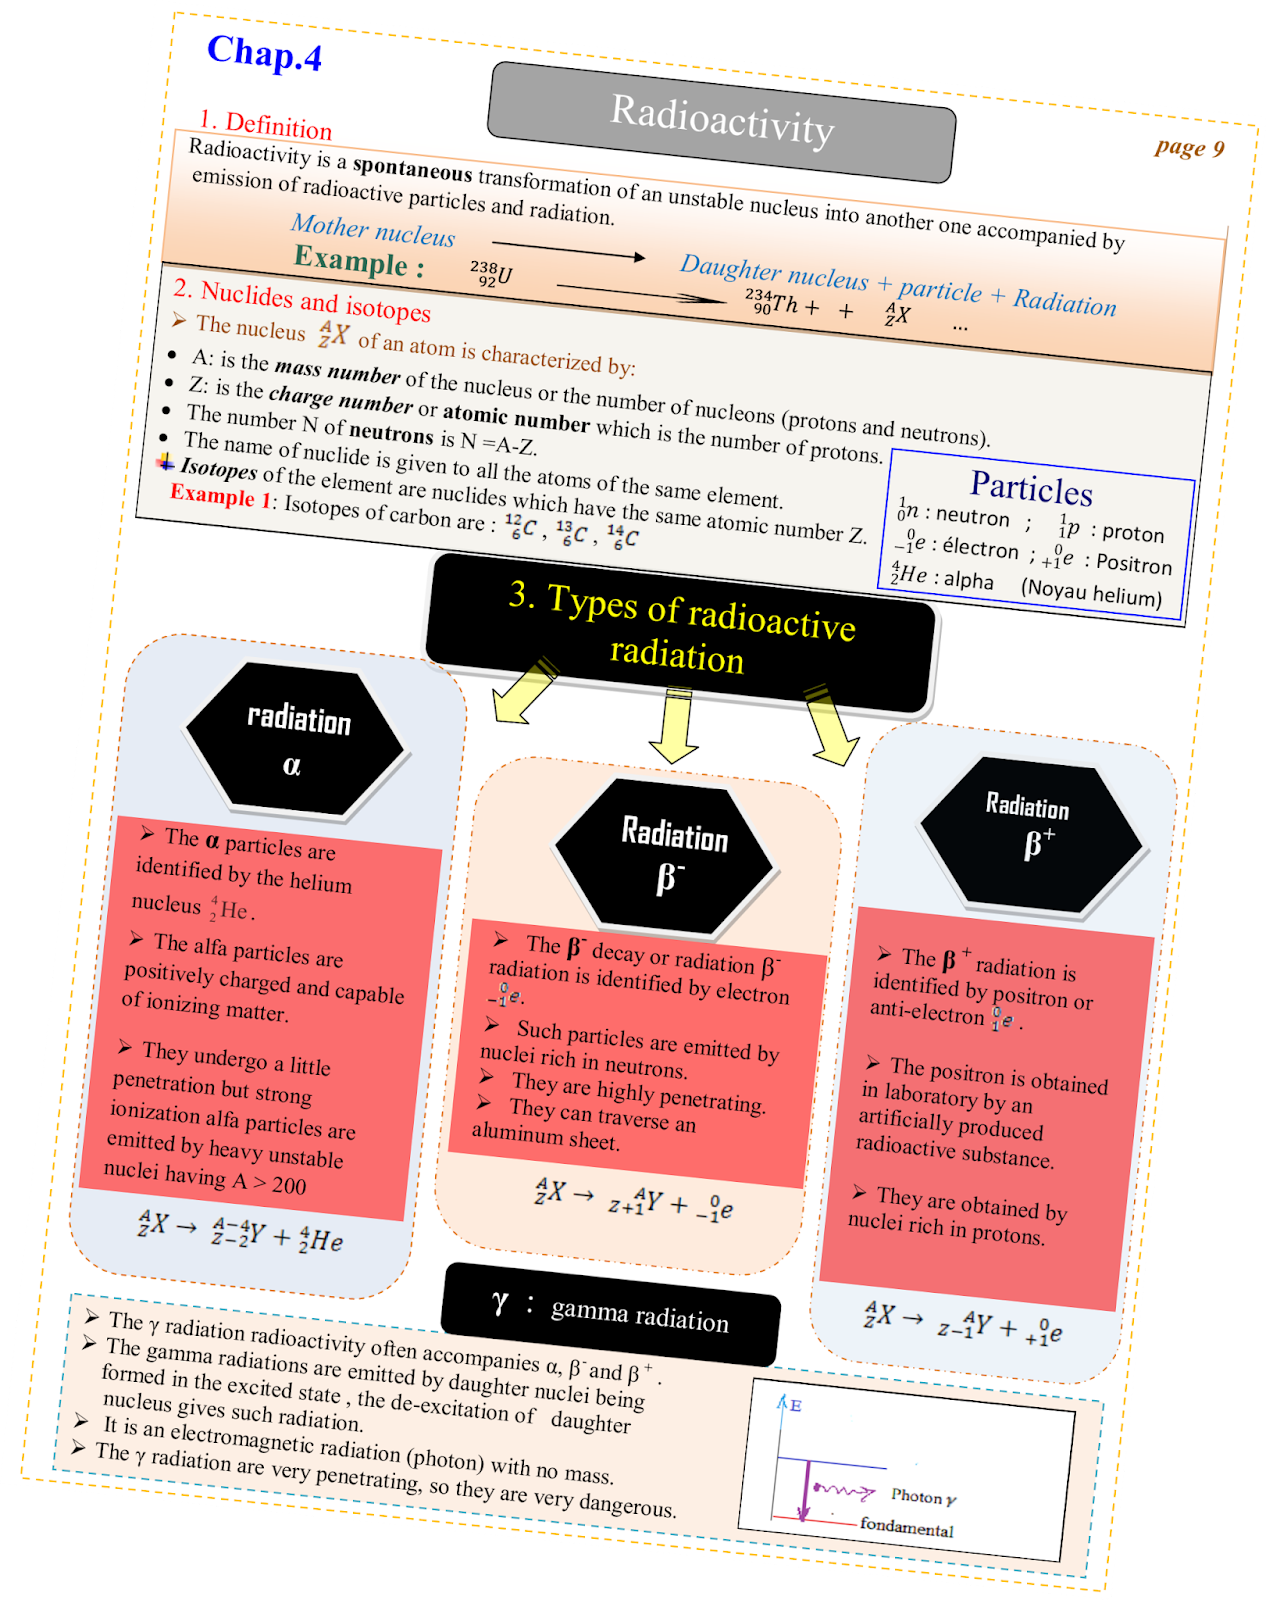 Chap 4 Radioactivity Or Spontaneous Nuclear Reactions